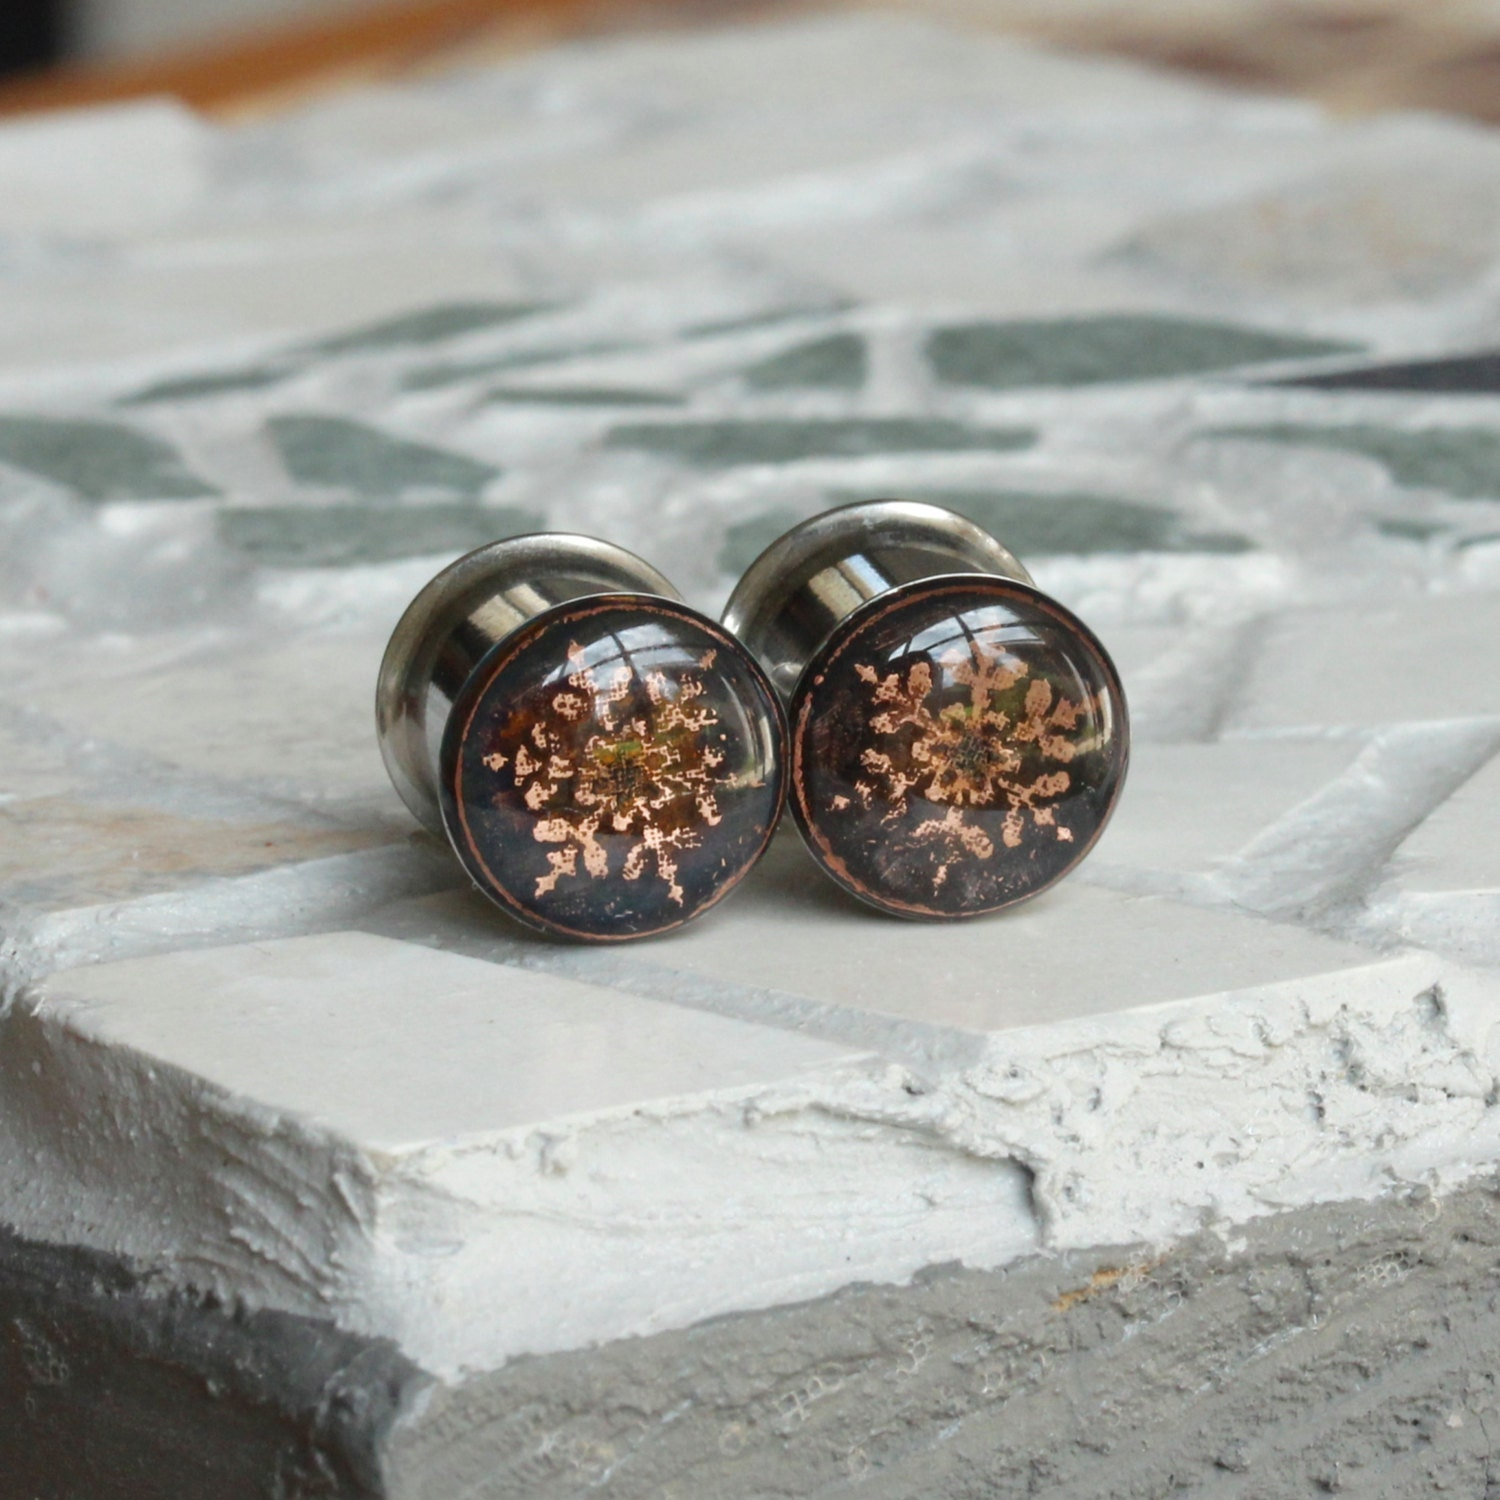 00 gauges 00g Plugs Gauge Earrings Copper Plugs 10mm